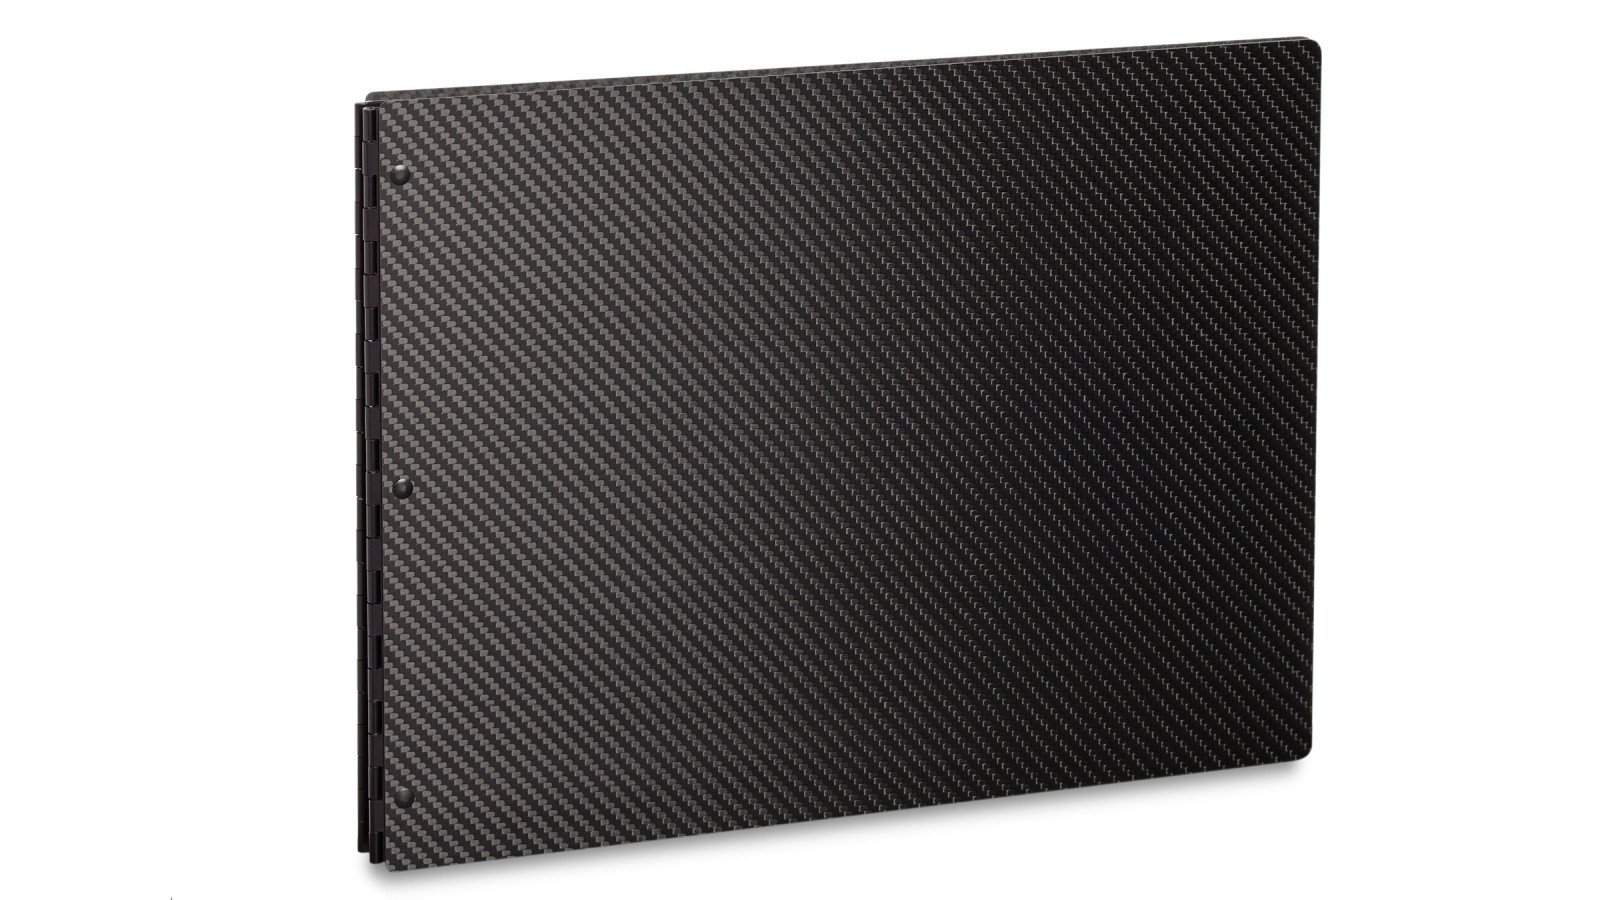 Pina Zangaro Carbon Fiber 8.5x11 Portrait Screwpost Binder, Black by Pina Zangaro